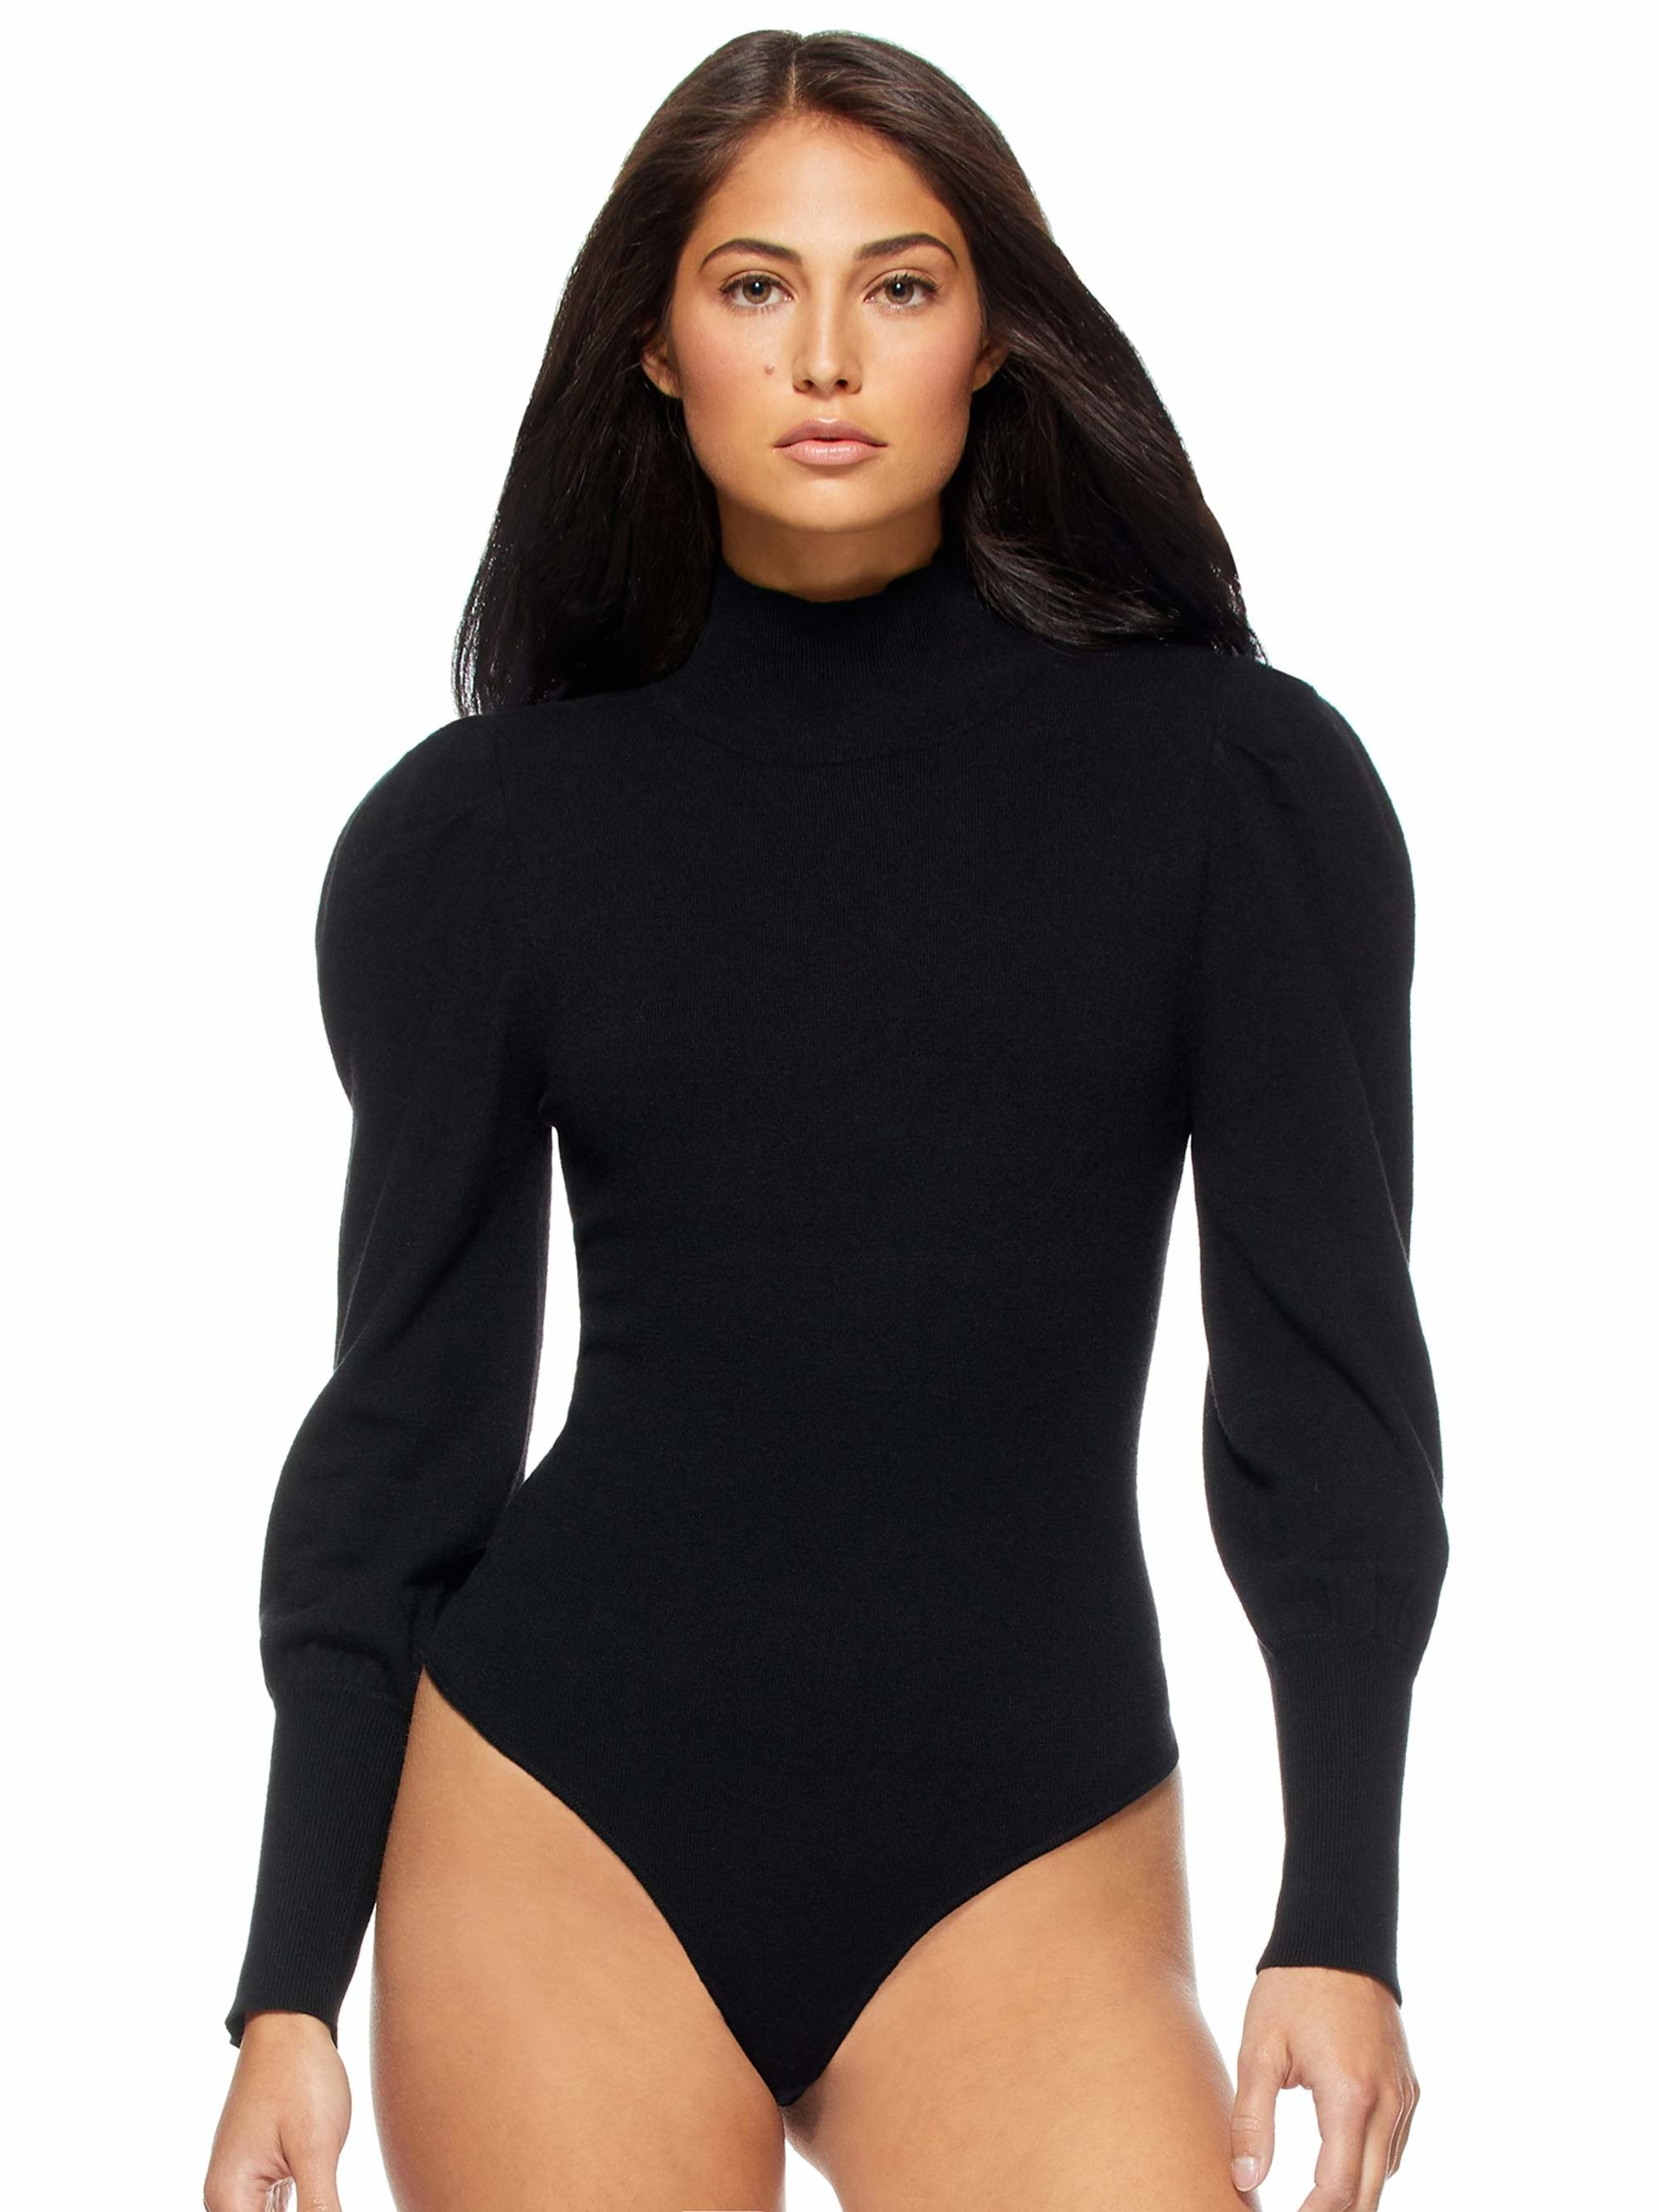 The puff-sleeve bodysuit